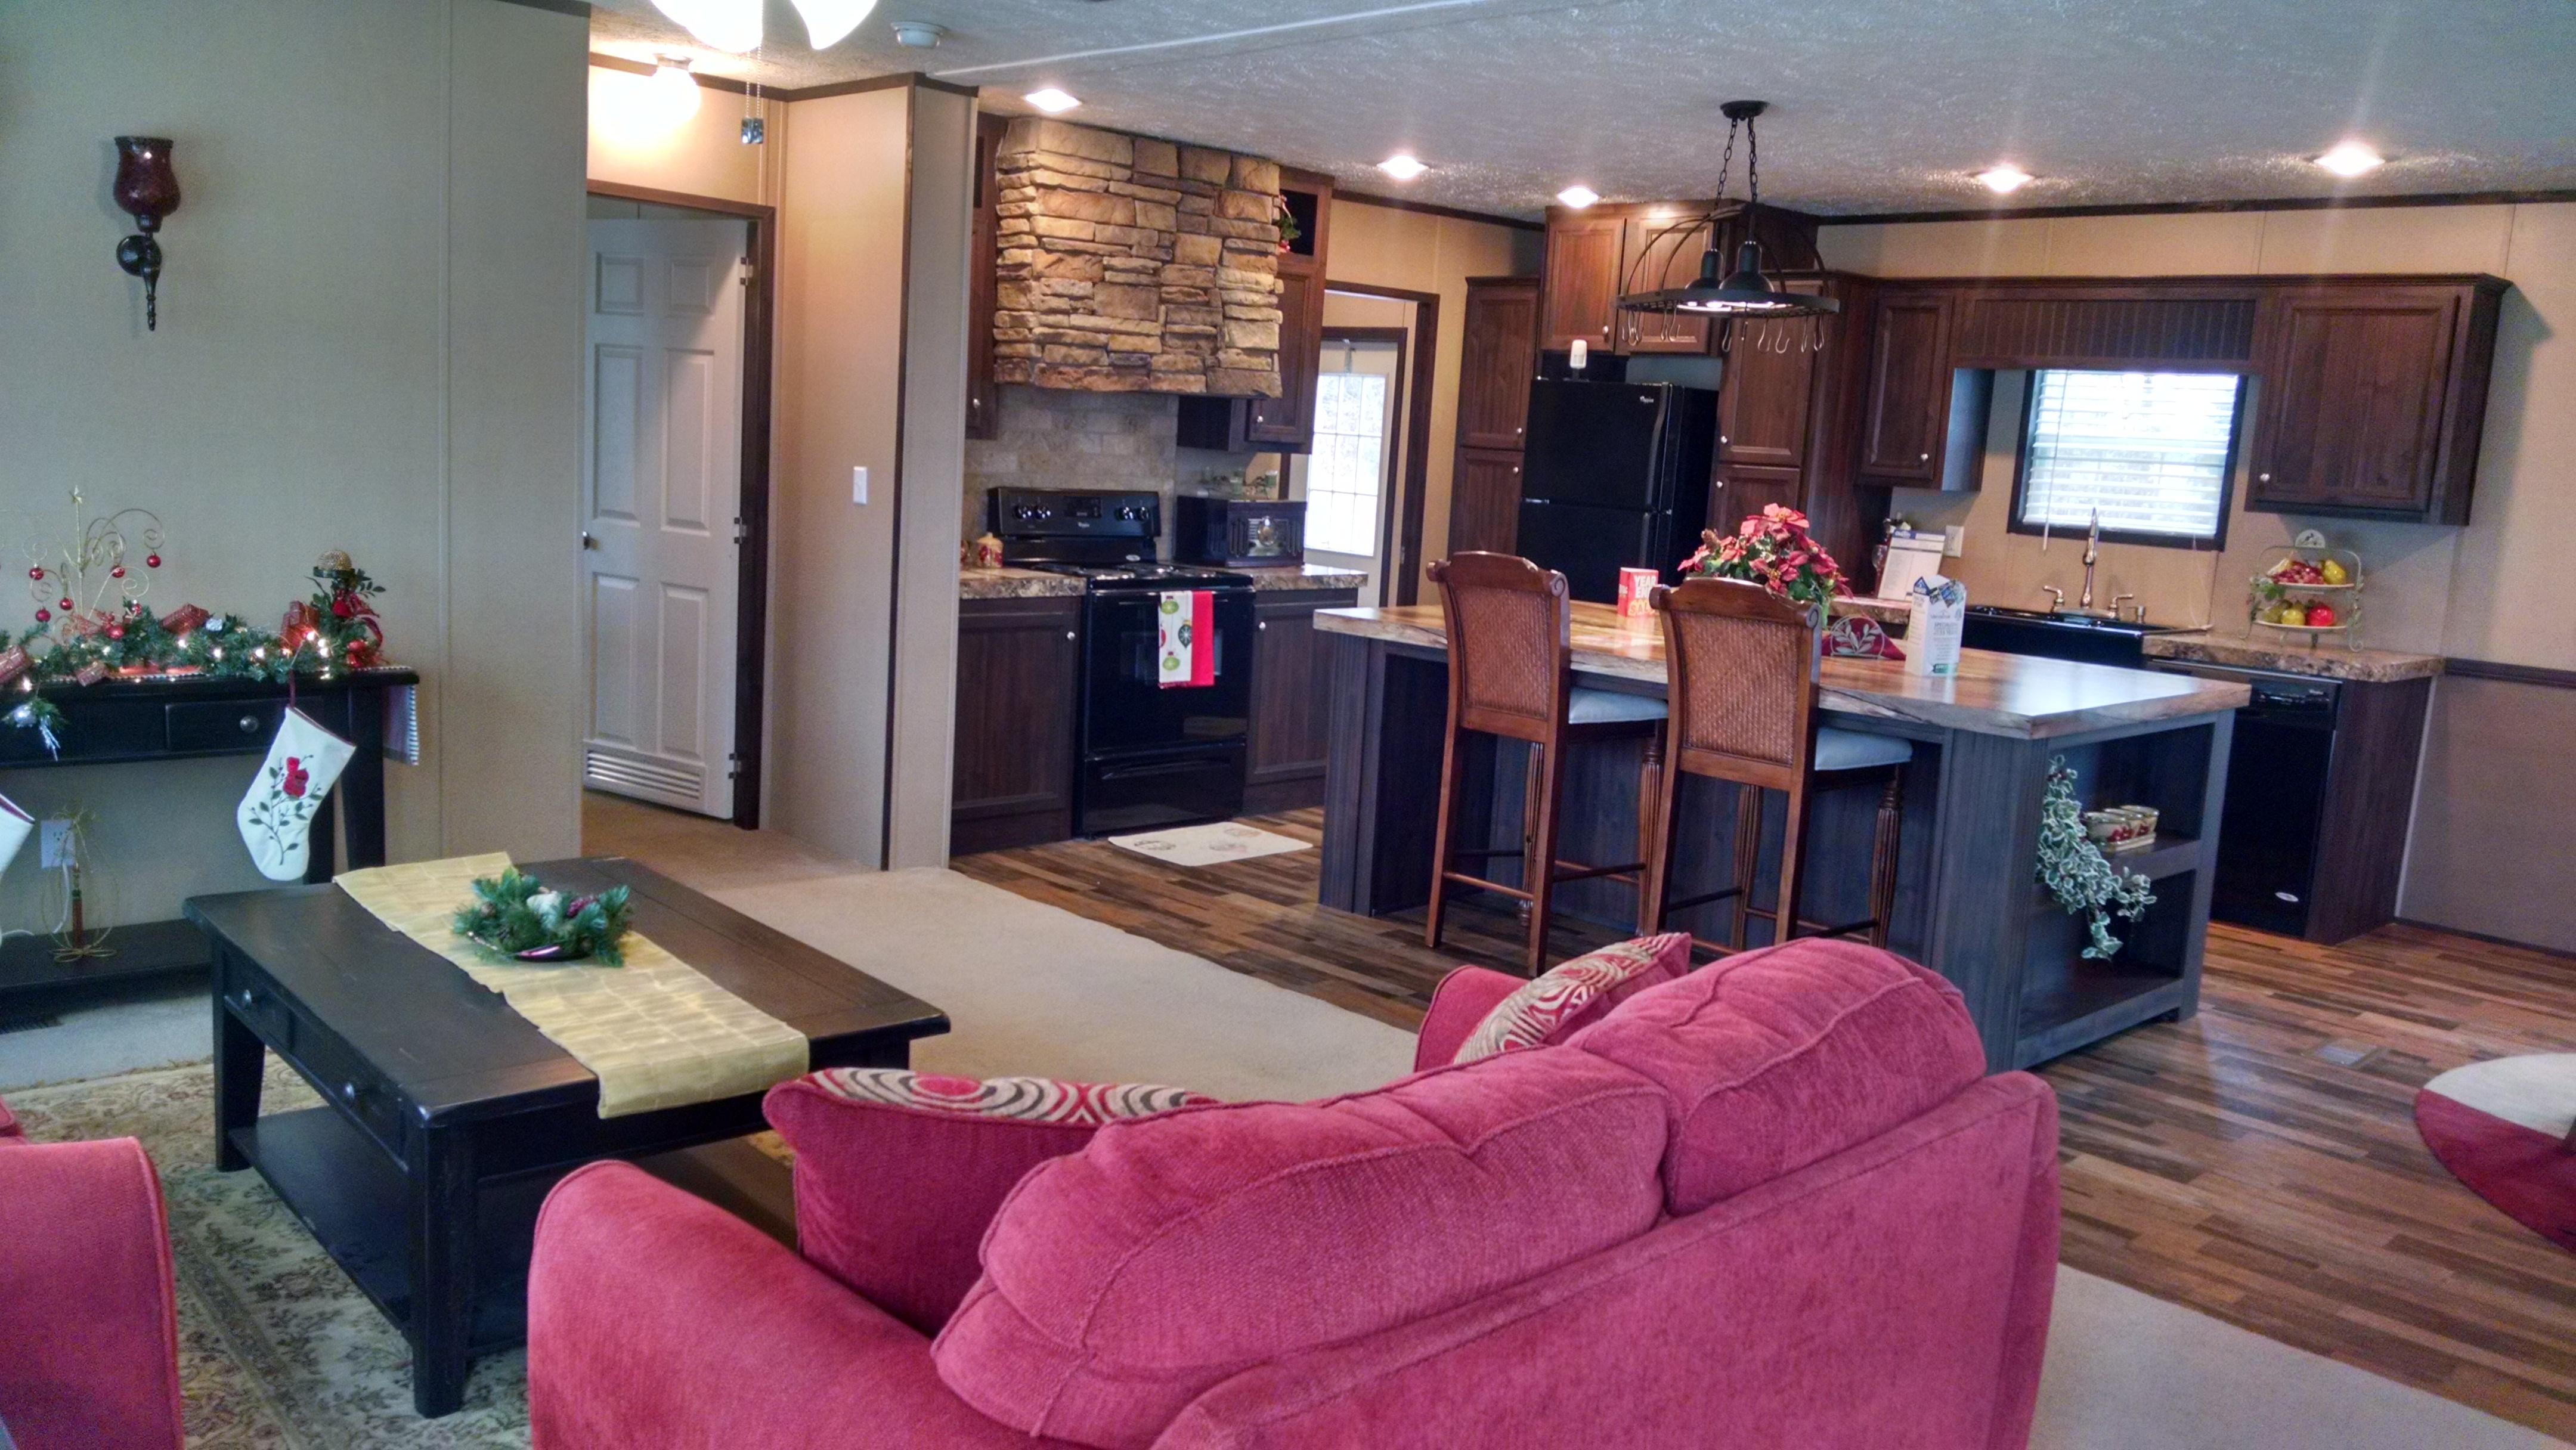 Clayton Homes - Mobile Homes Paris Tennessee on clayton wi, clayton ny, clayton de, clayton la, clayton wa,